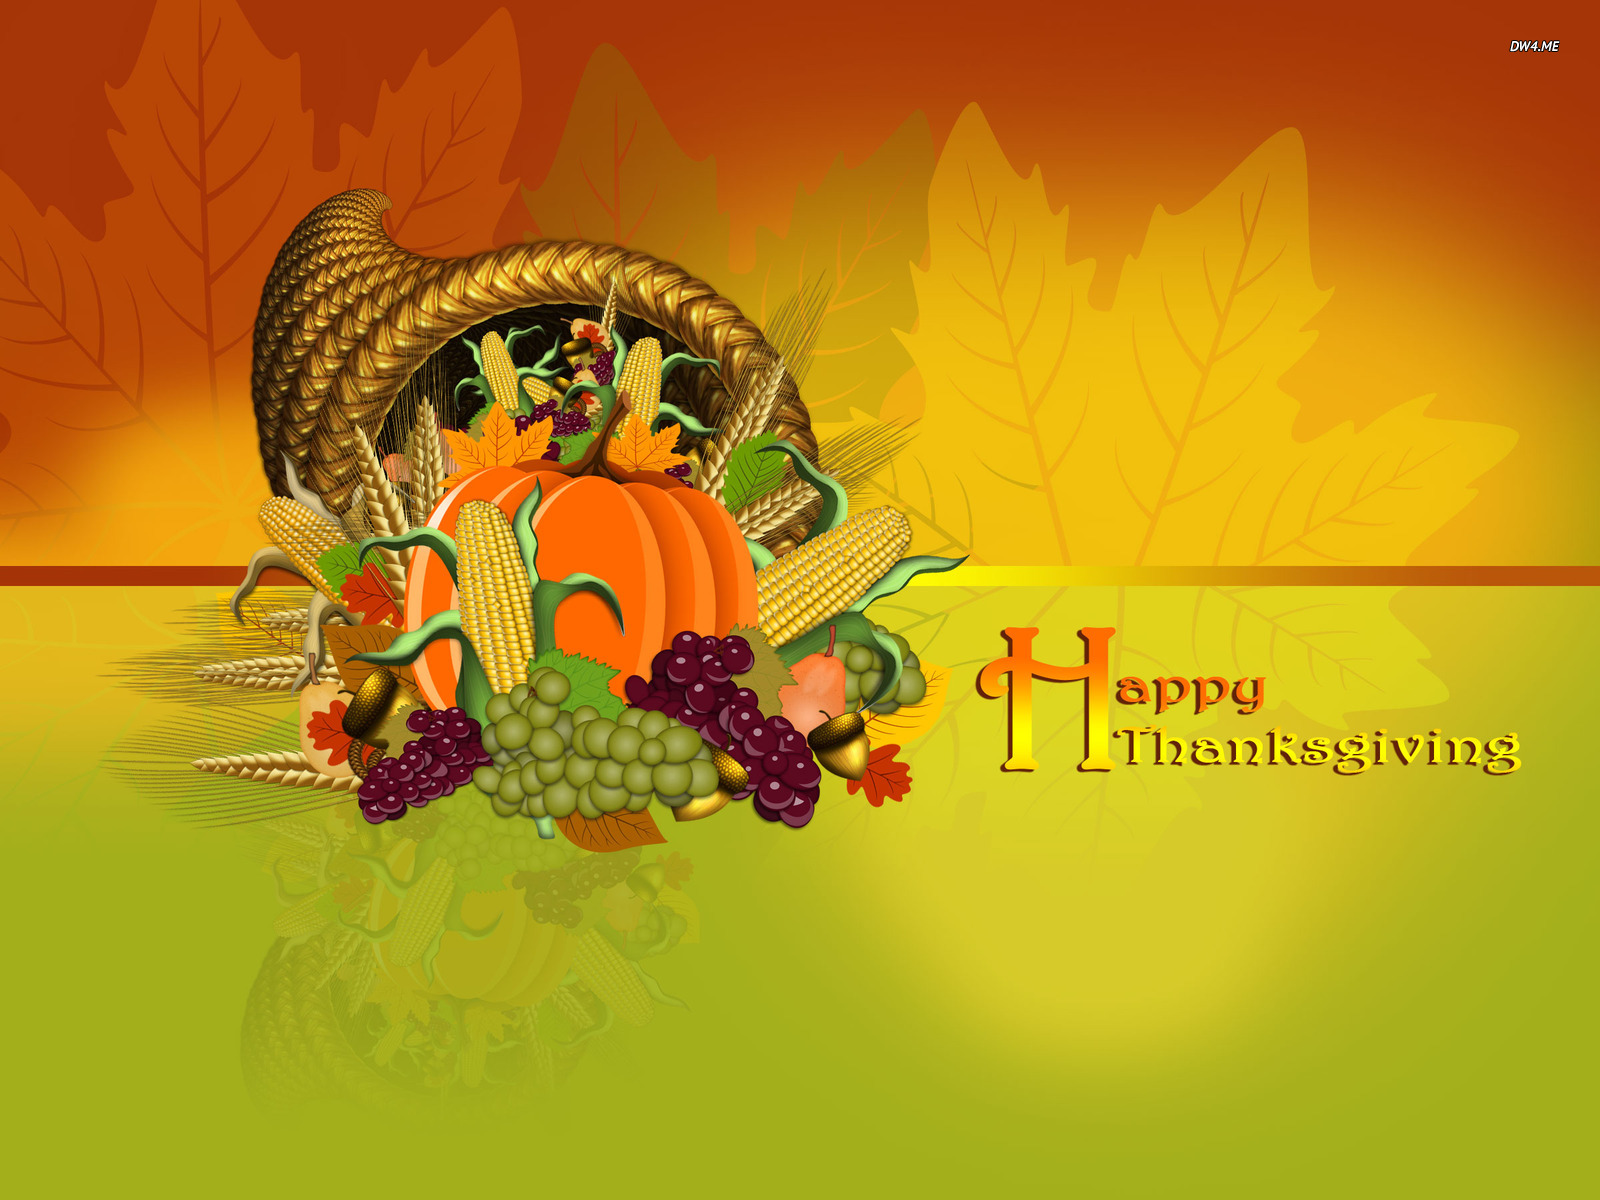 definition thanksgiving theme wallpaper - photo #27